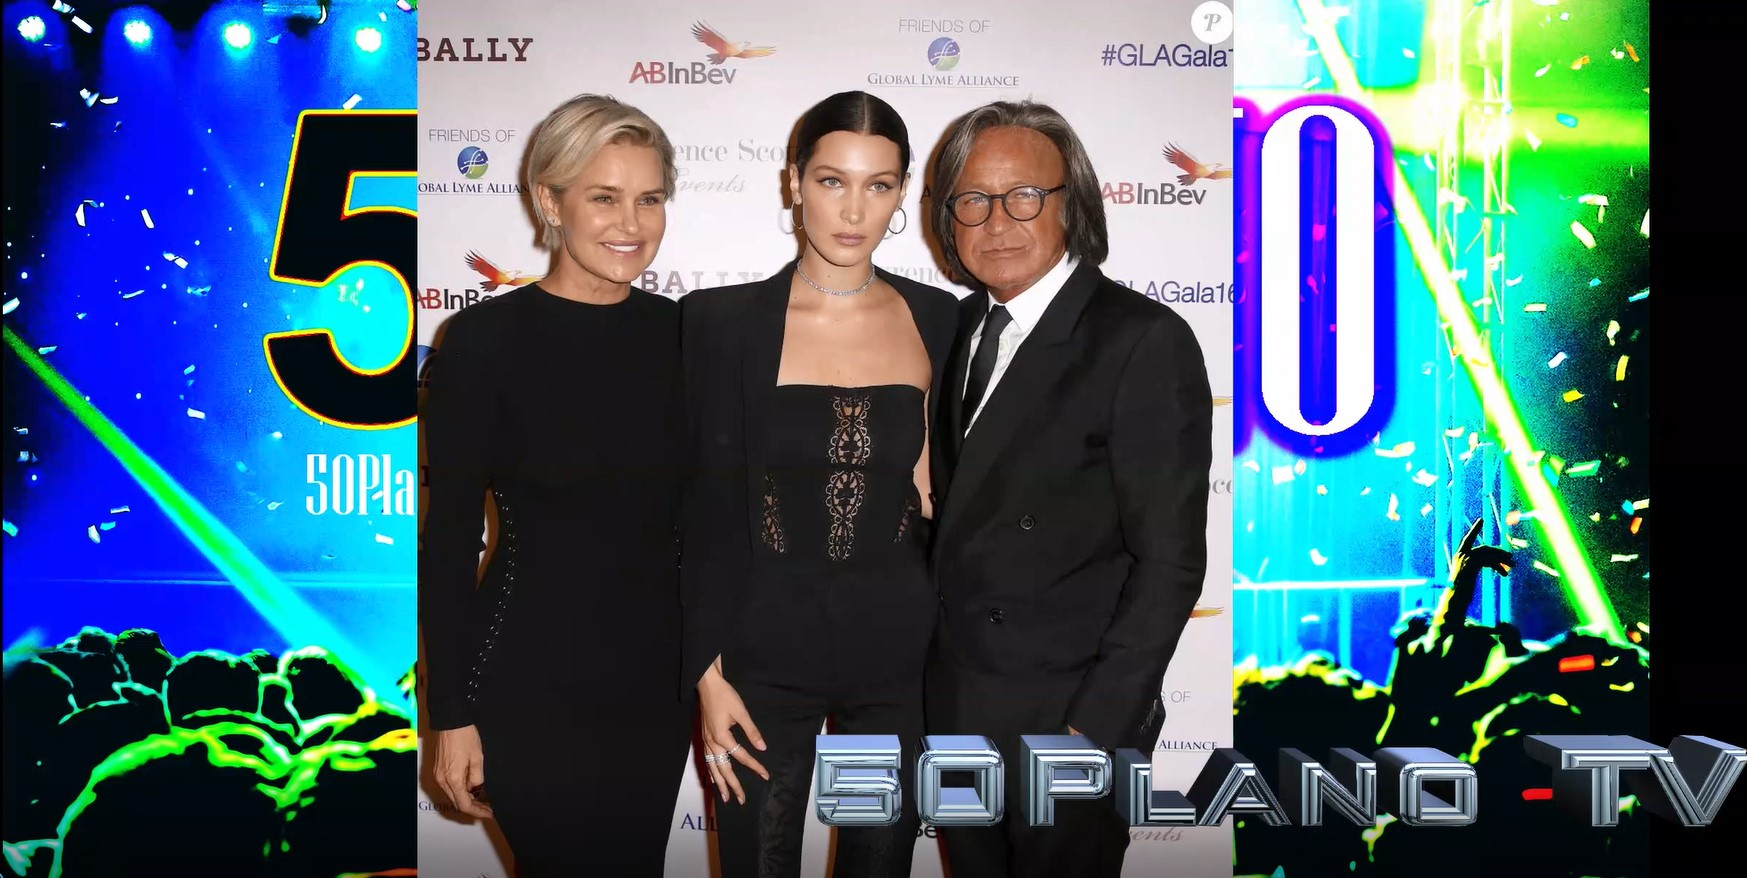 50Plano TV Upscale Update – What Kind of Expensive Jet Did Bella Hadid Celebrate Her Birthday In? A $10K Oven By Christmas?